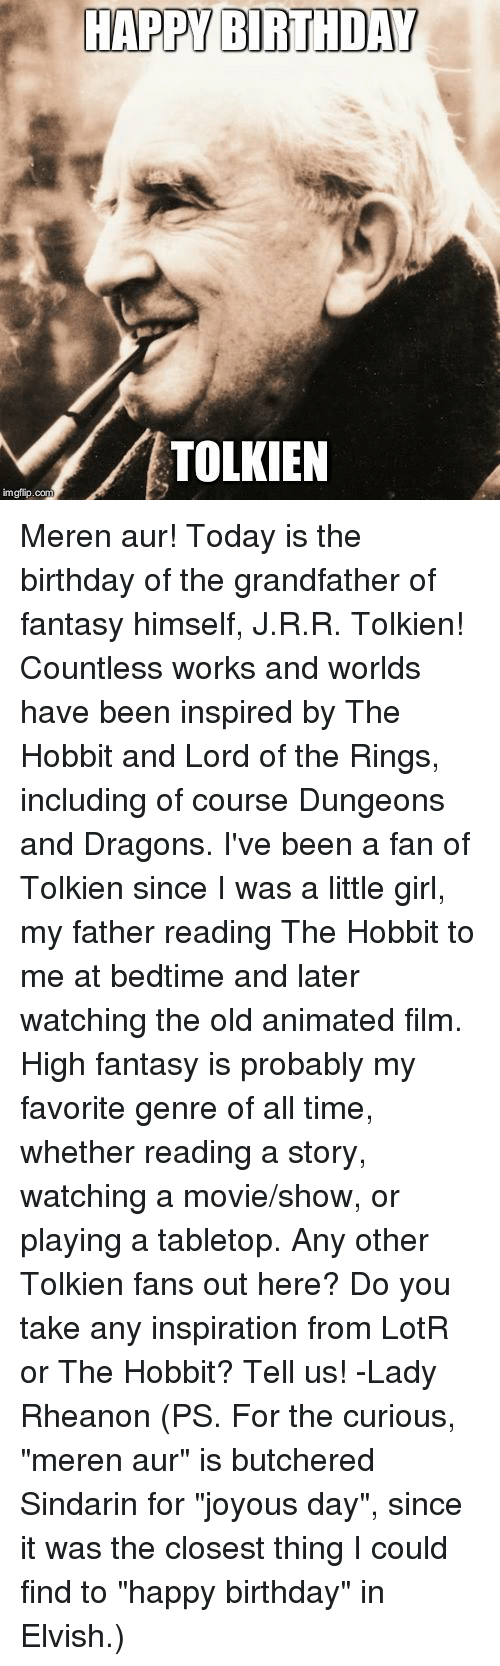 """lord of the ring: HAPPY BIRTHDAY  TOLKIEN  imgflip.com Meren aur! Today is the birthday of the grandfather of fantasy himself, J.R.R. Tolkien! Countless works and worlds have been inspired by The Hobbit and Lord of the Rings, including of course Dungeons and Dragons. I've been a fan of Tolkien since I was a little girl, my father reading The Hobbit to me at bedtime and later watching the old animated film. High fantasy is probably my favorite genre of all time, whether reading a story, watching a movie/show, or playing a tabletop.   Any other Tolkien fans out here? Do you take any inspiration from LotR or The Hobbit? Tell us!   -Lady Rheanon   (PS. For the curious, """"meren aur"""" is butchered Sindarin for """"joyous day"""", since it was the closest thing I could find to """"happy birthday"""" in Elvish.)"""